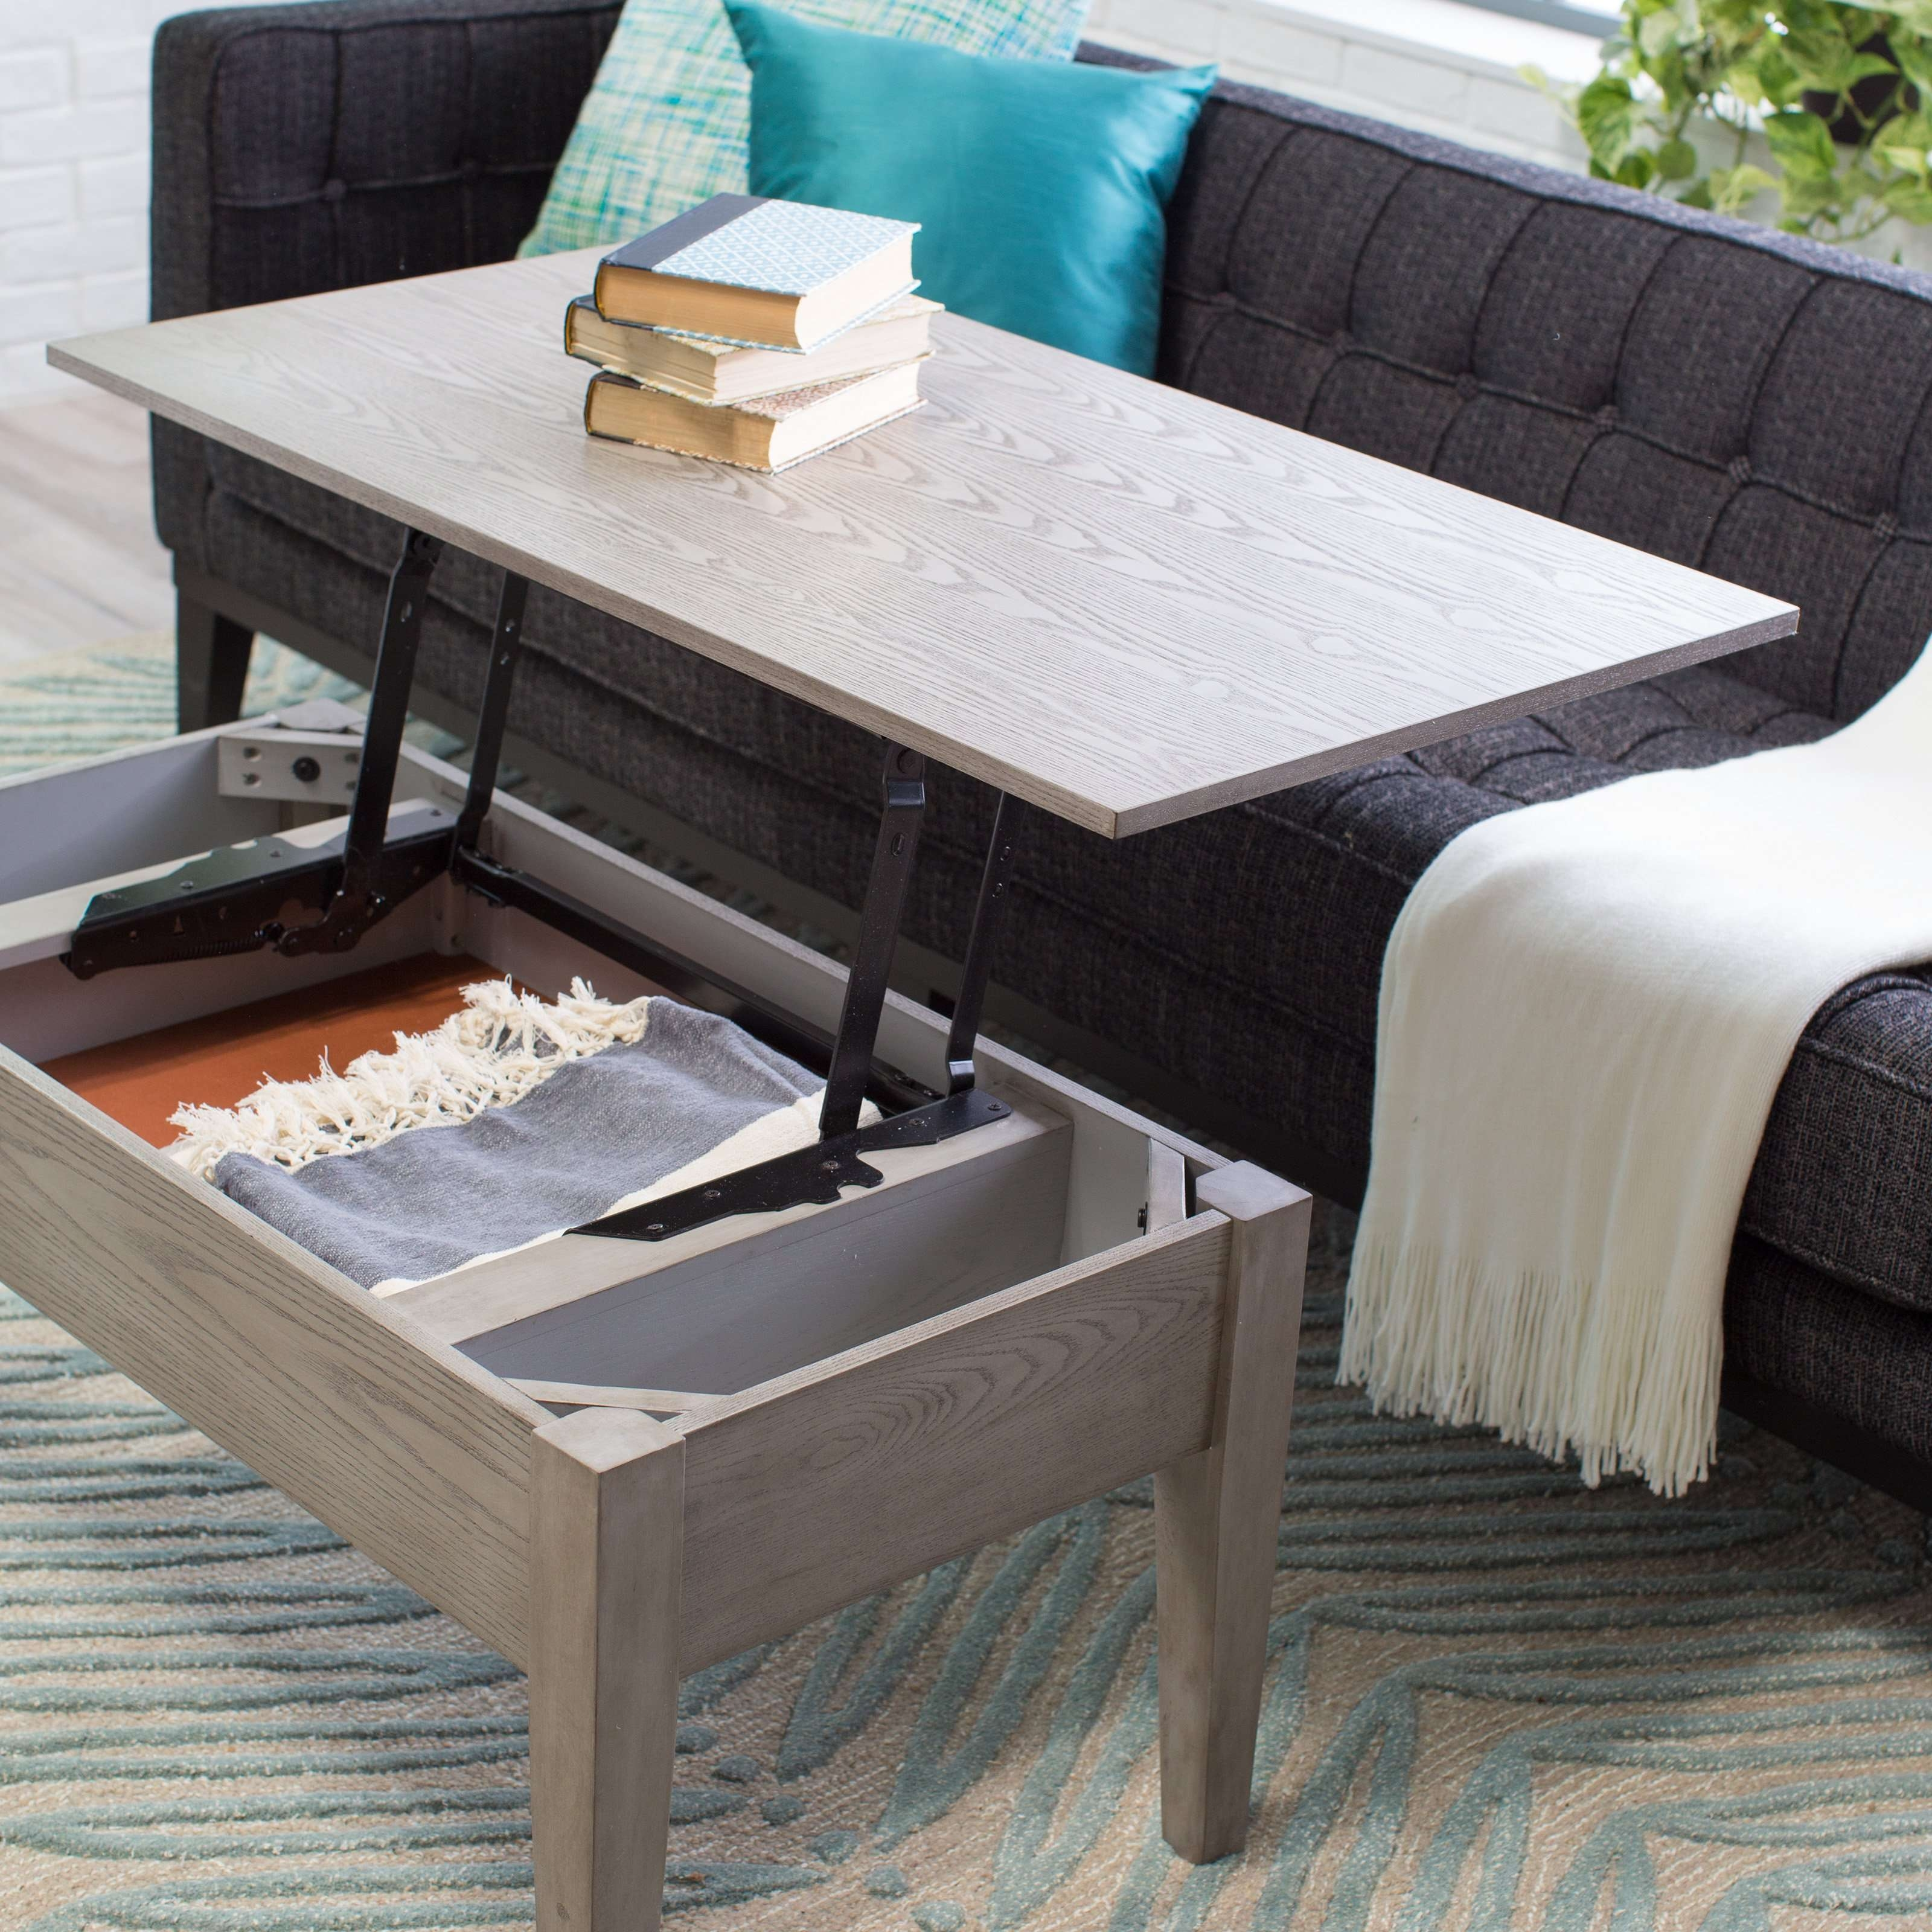 Hayneedle With Regard To Widely Used Top Lifting Coffee Tables (View 8 of 20)